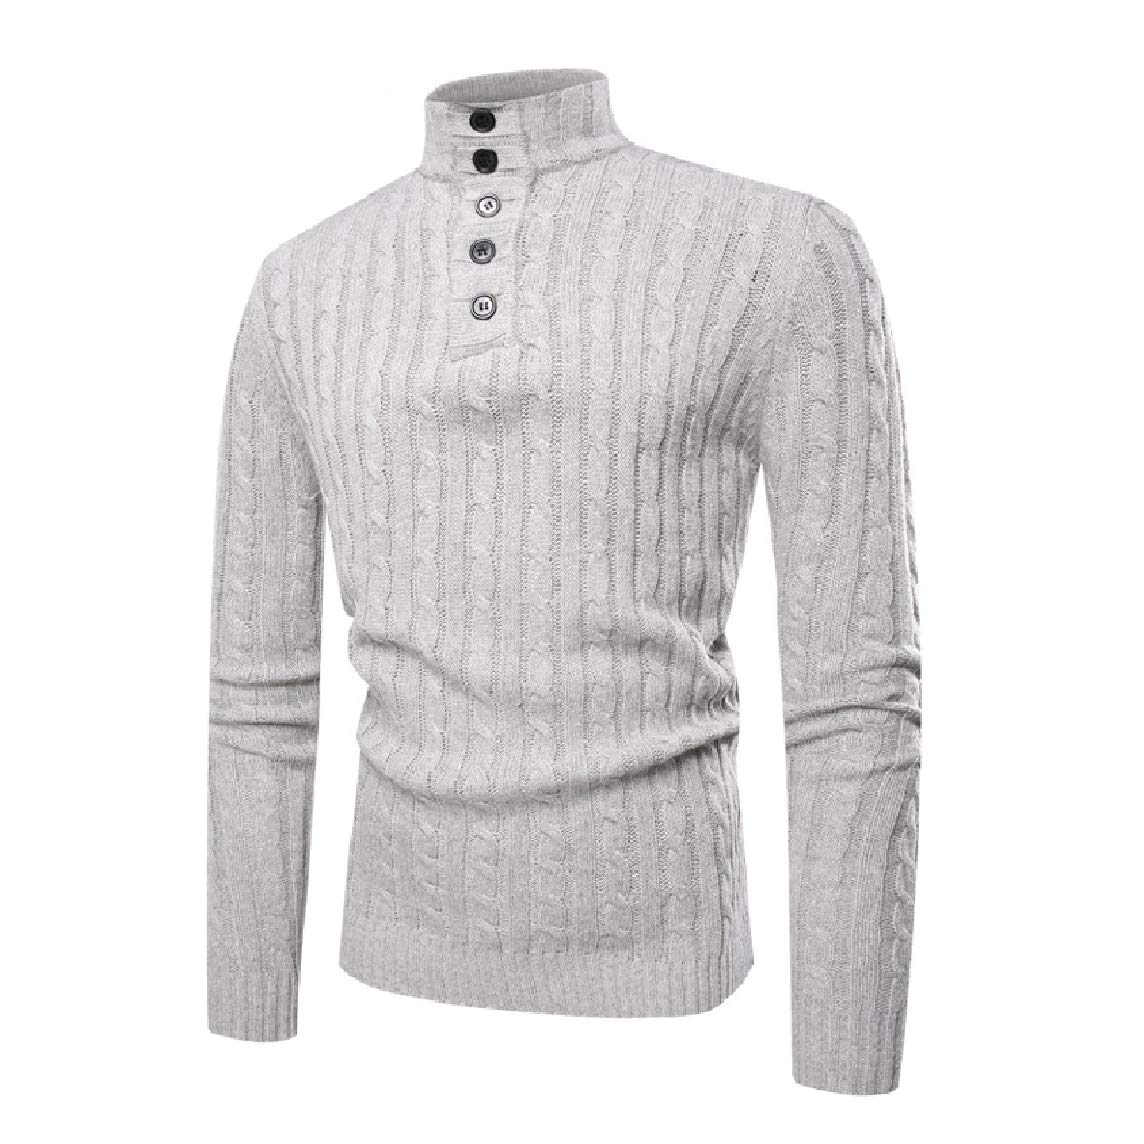 LinkShow Mens Fashion Chic Soft Knitted High Neck Long-Sleeve Jacquard Pullover Sweater